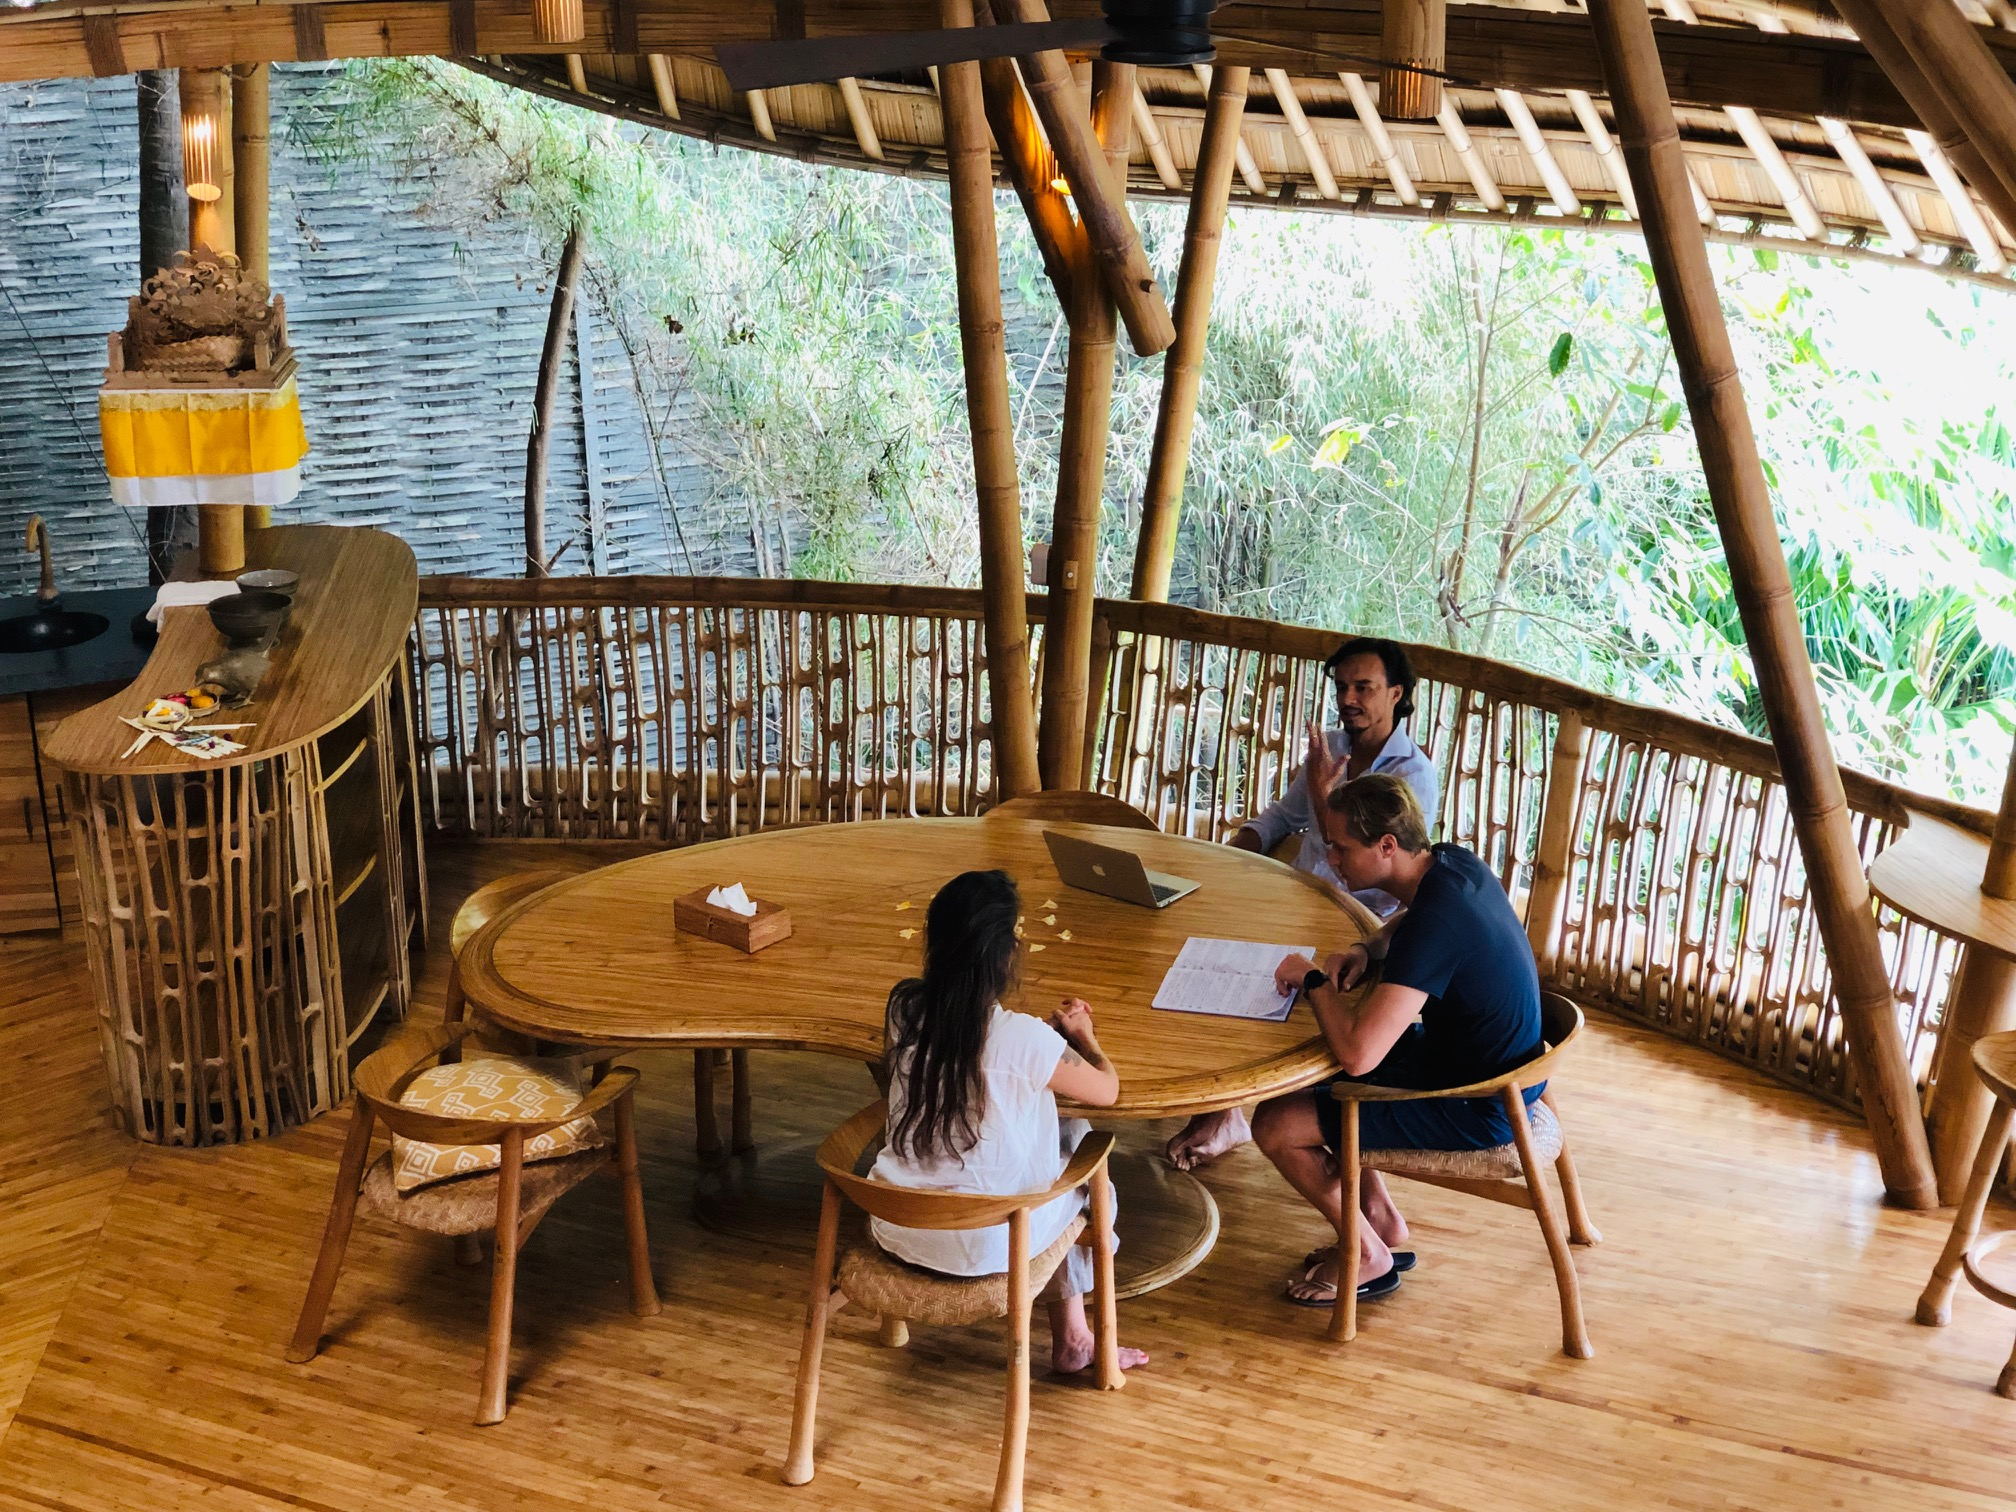 Workshops in the jungle - Recently we have done a number of strategy workshops on Bali. Speaking of getting out of the office! We reinvented brands, we crafted business models, we worked on prototypes and had sh*tloads of fun. Reach out if you want to know more. 🌴🌴